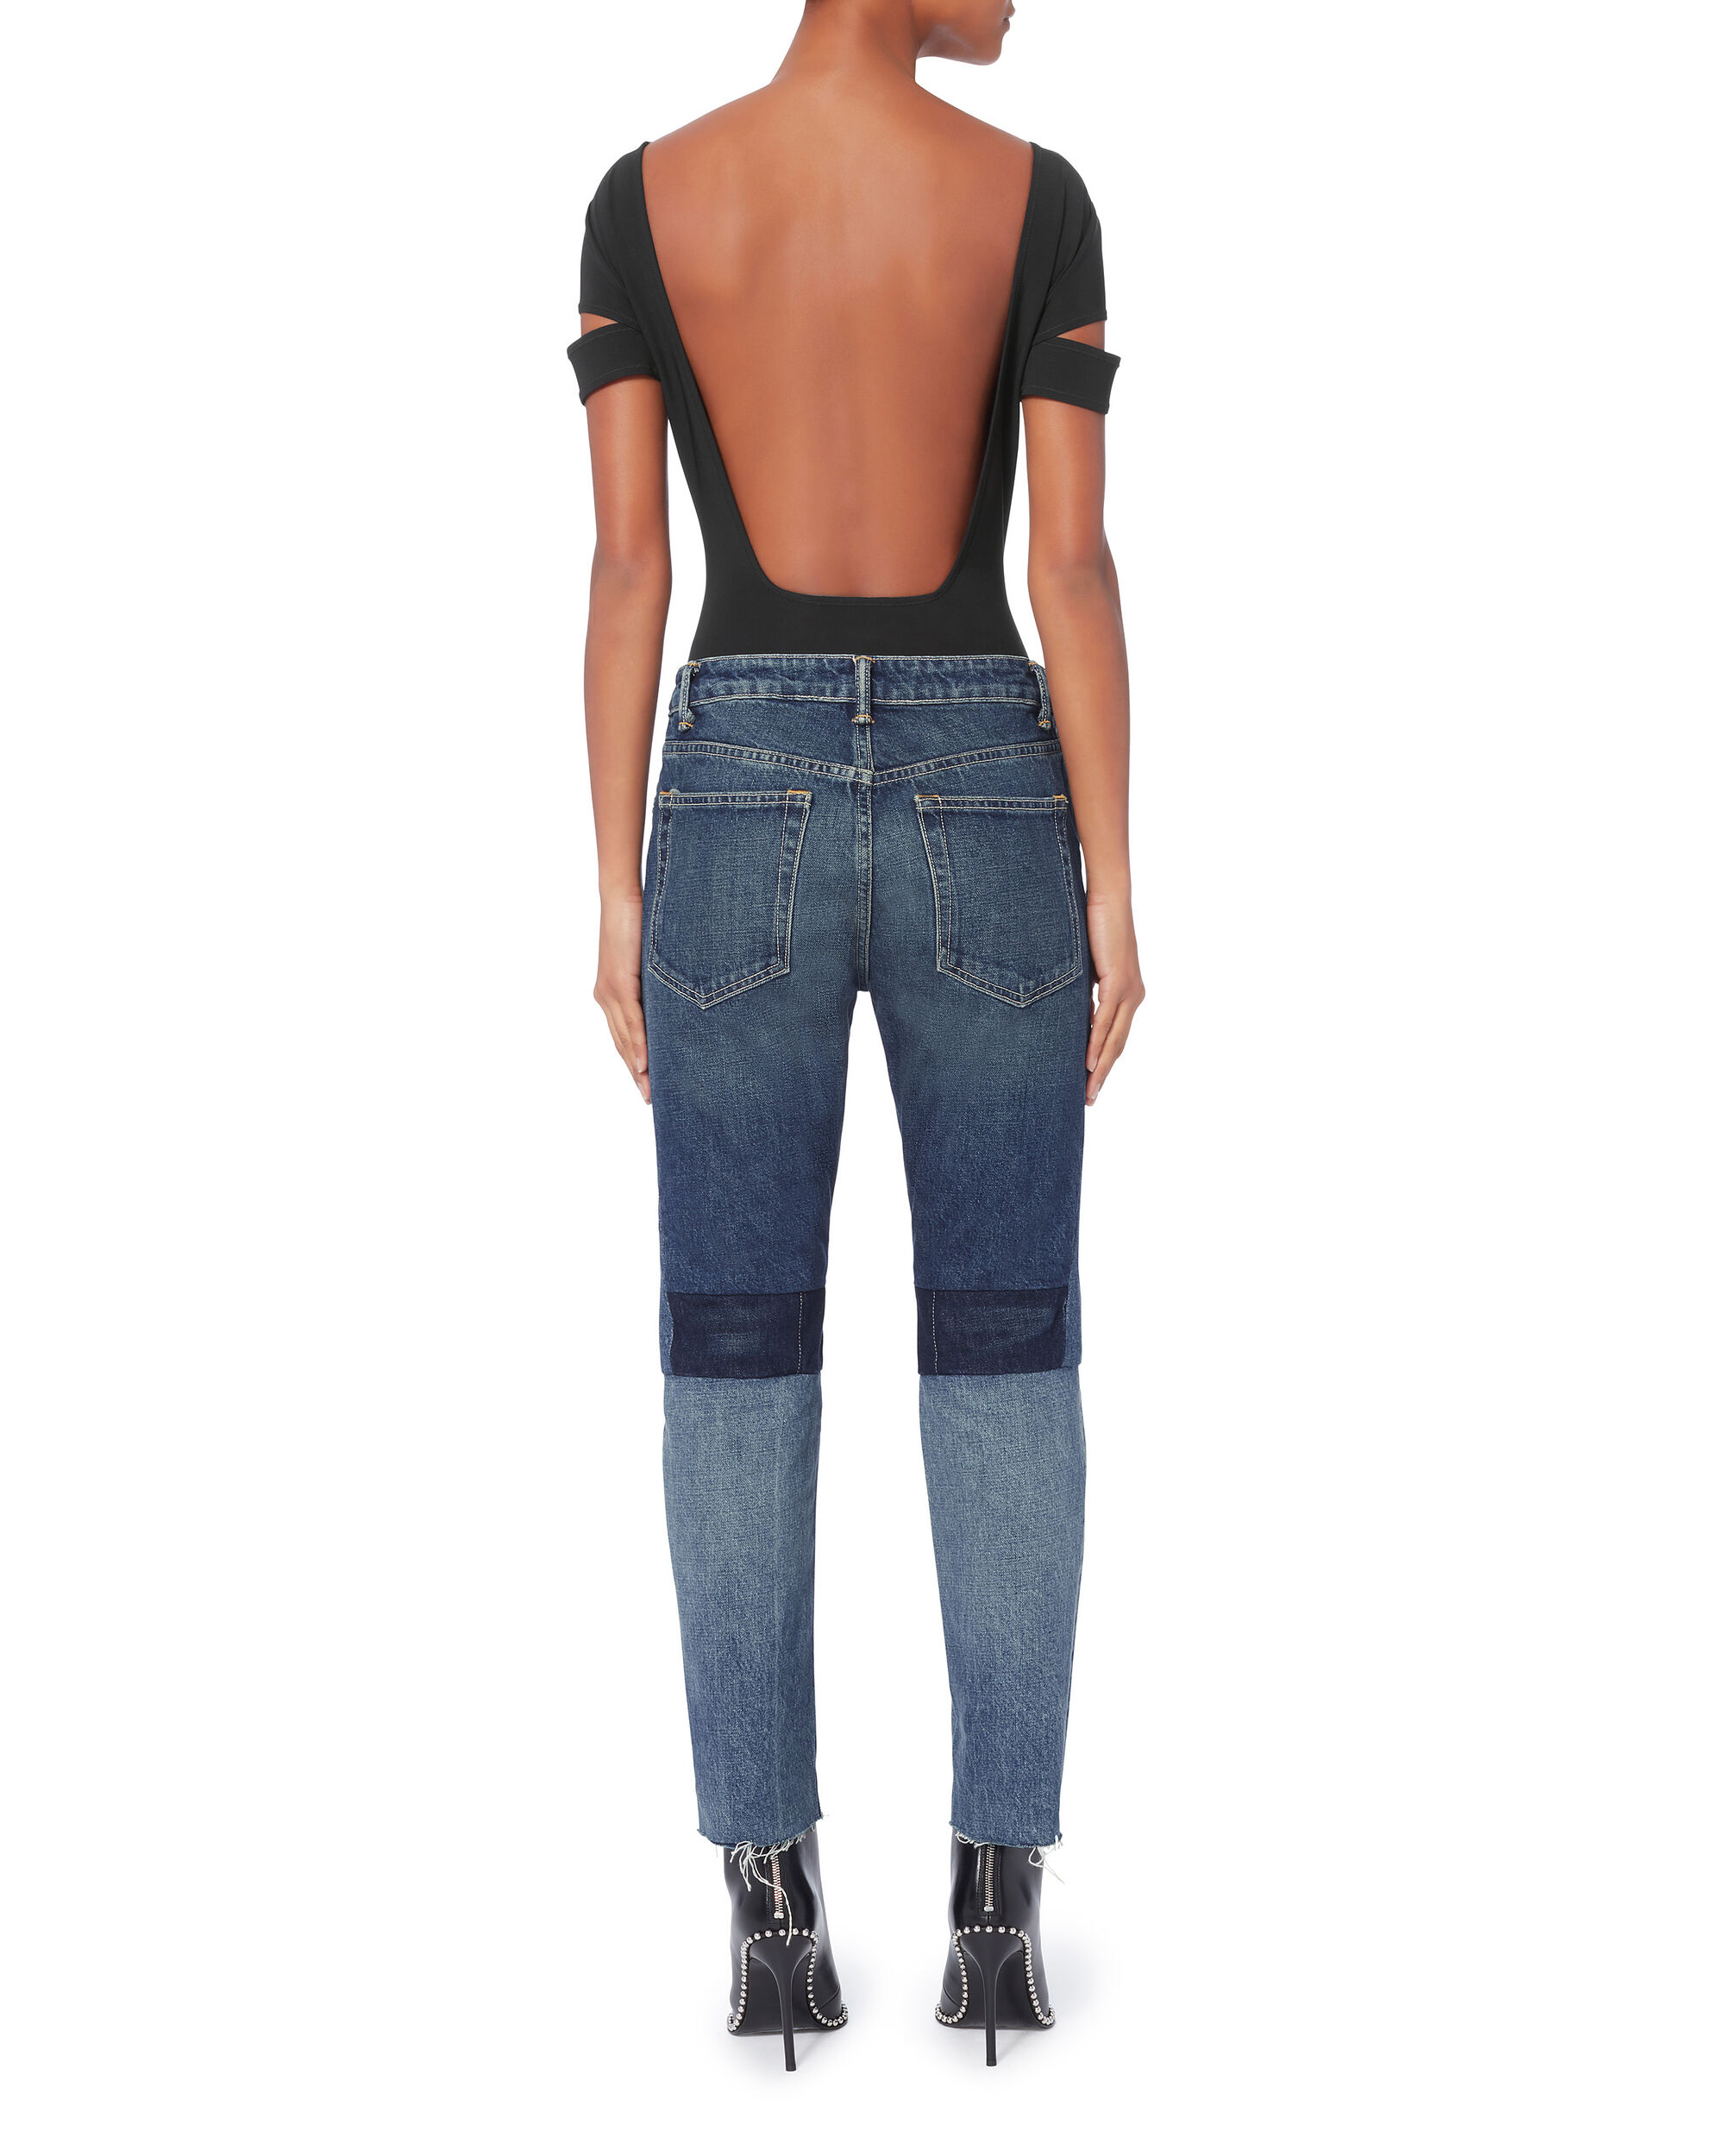 Patchwork High-Rise Crop Jeans, BLUE, hi-res